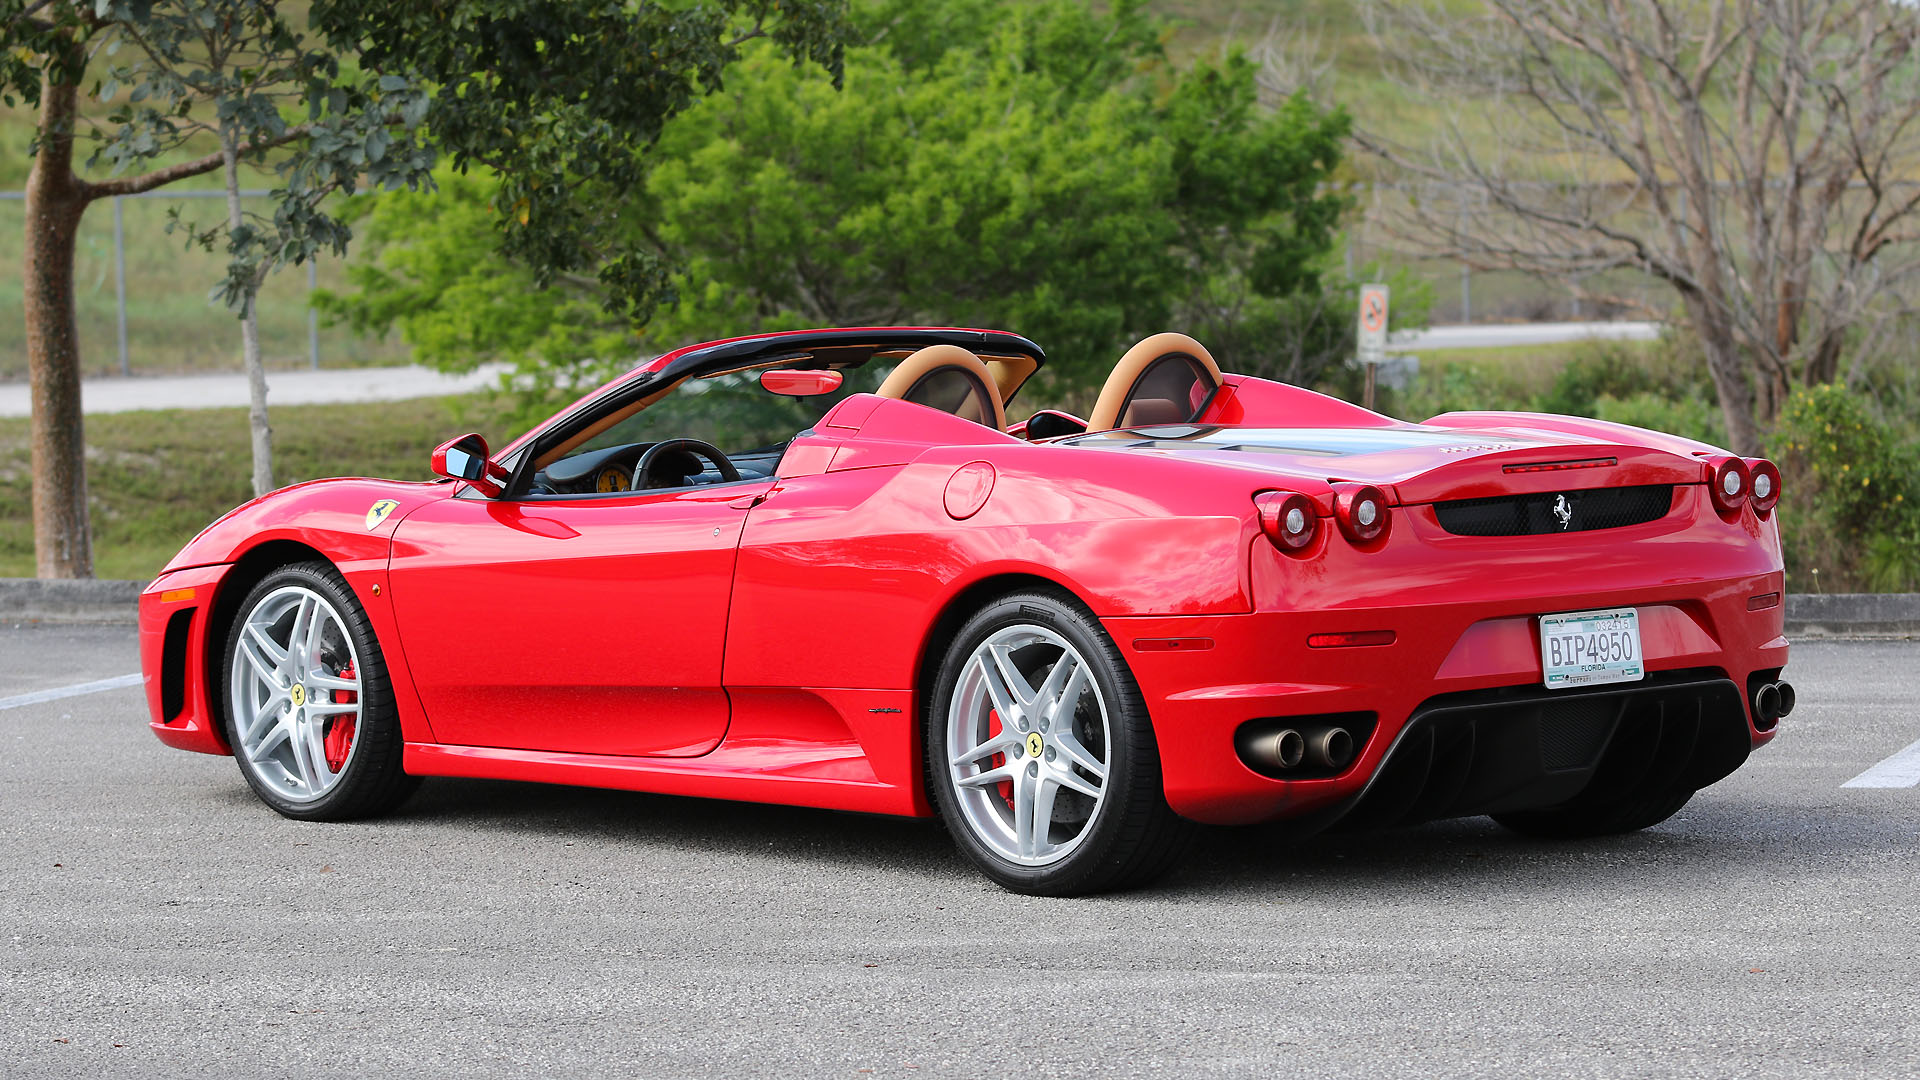 Ferrari F430 Spider Gallery Dragtimes Com Drag Racing